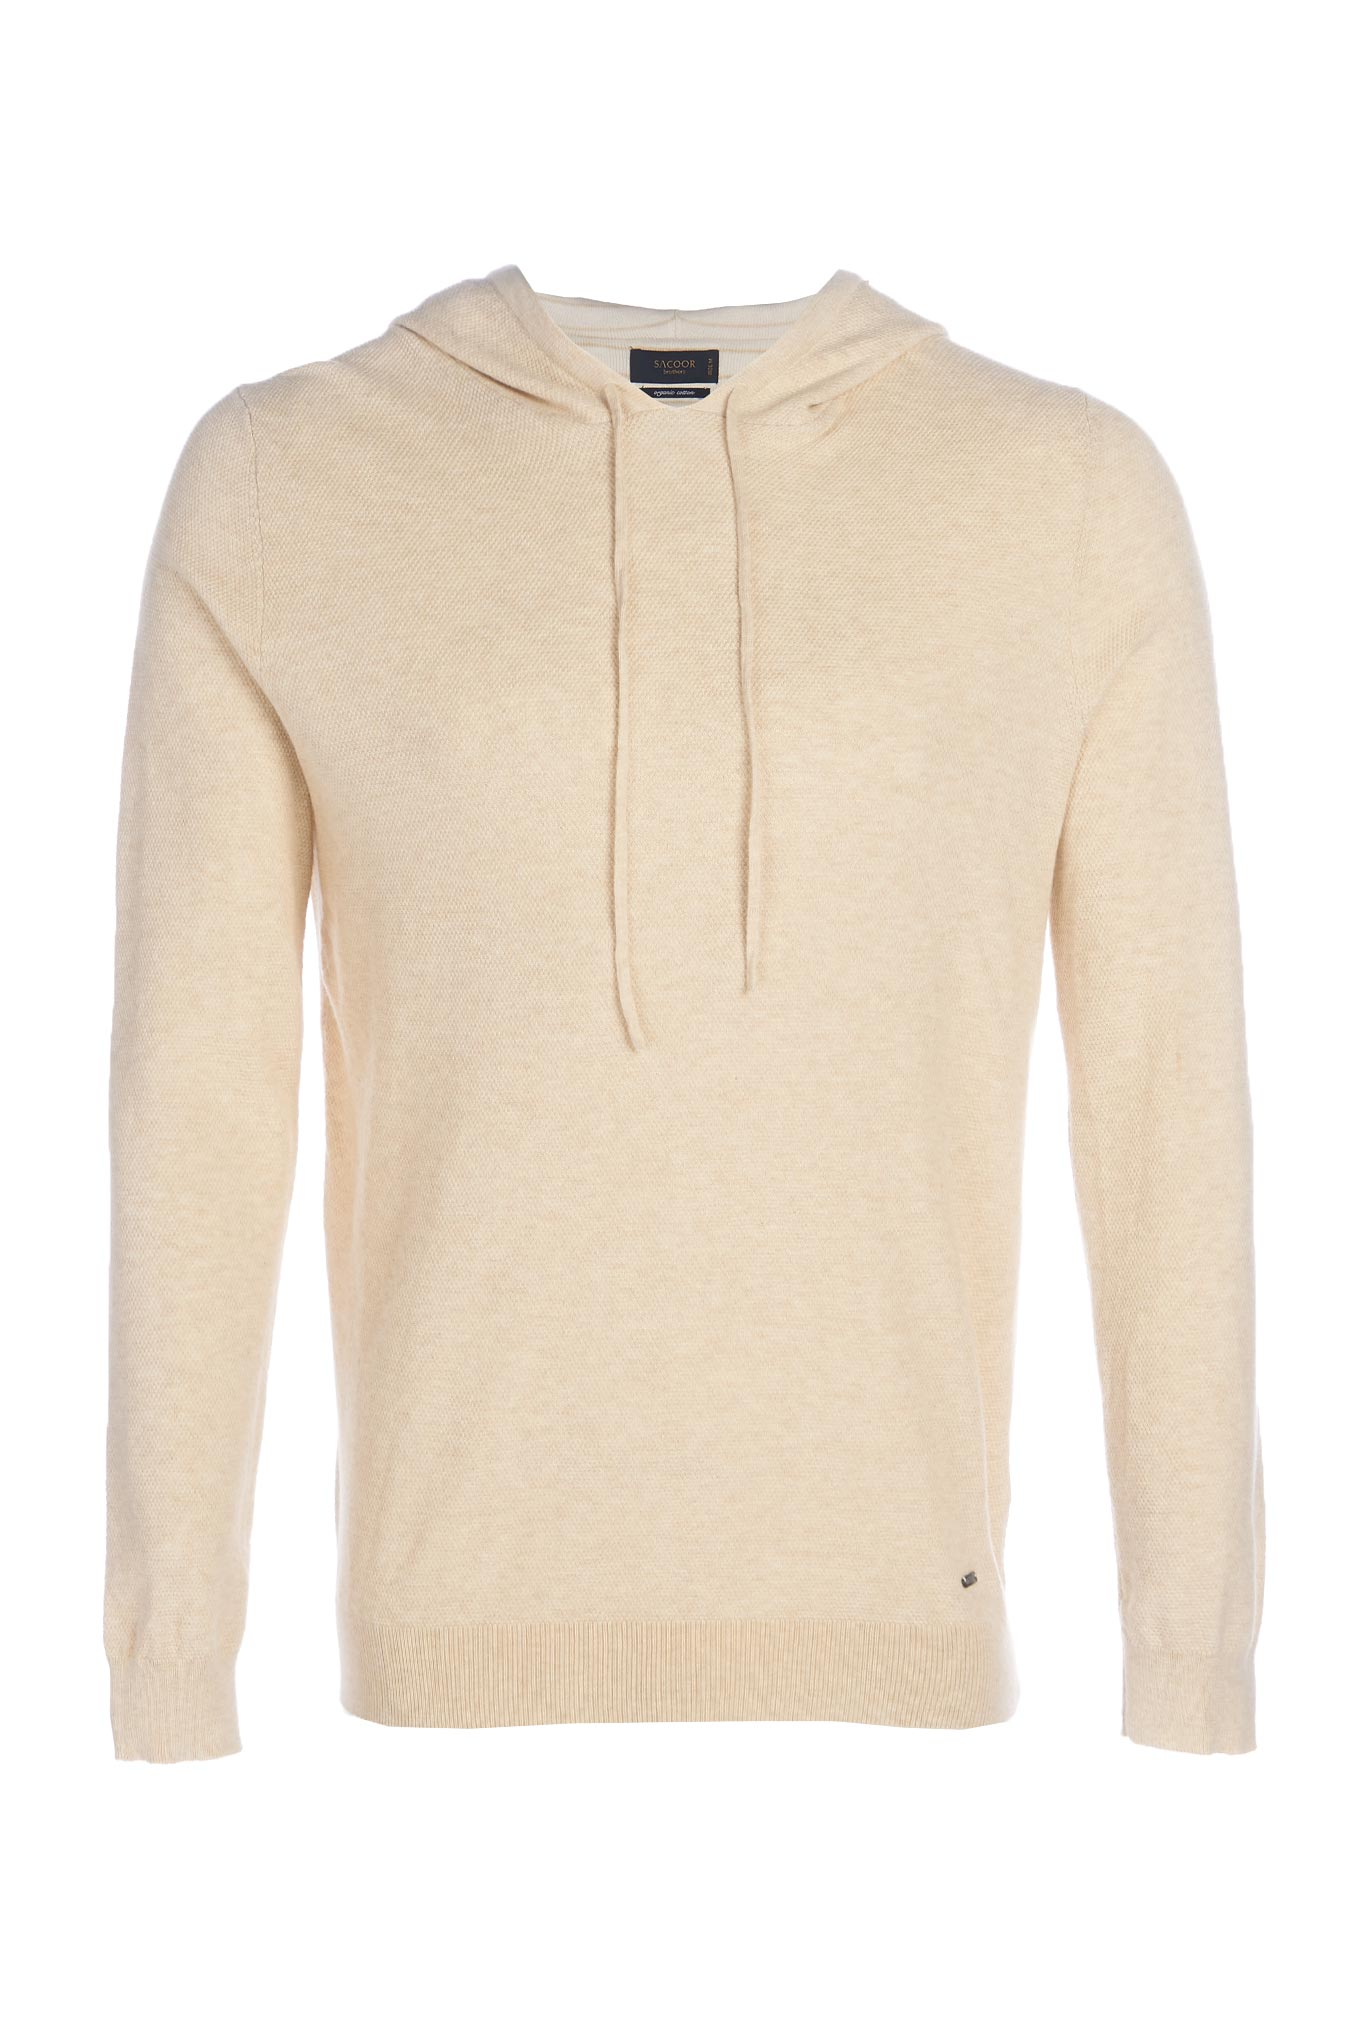 Sweater Beige Casual Man